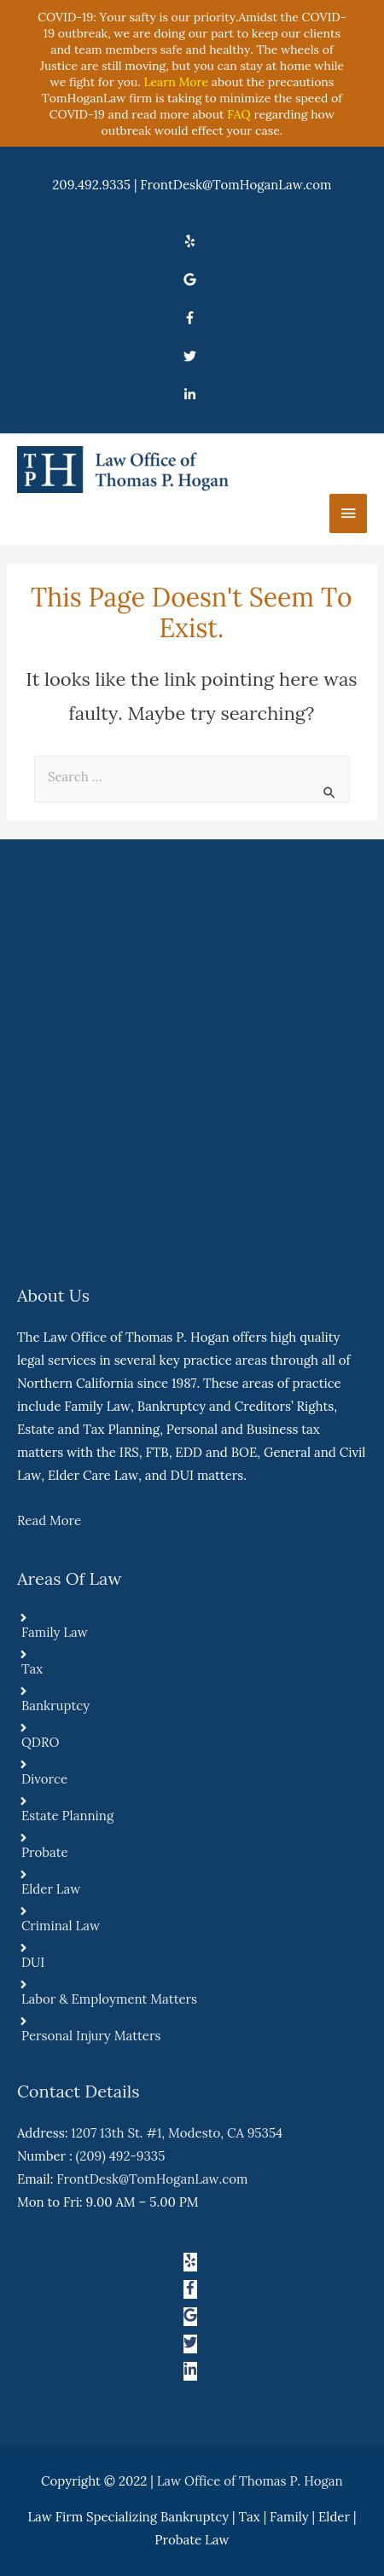 Thomas Hogan Law Office - Pleasanton CA Lawyers